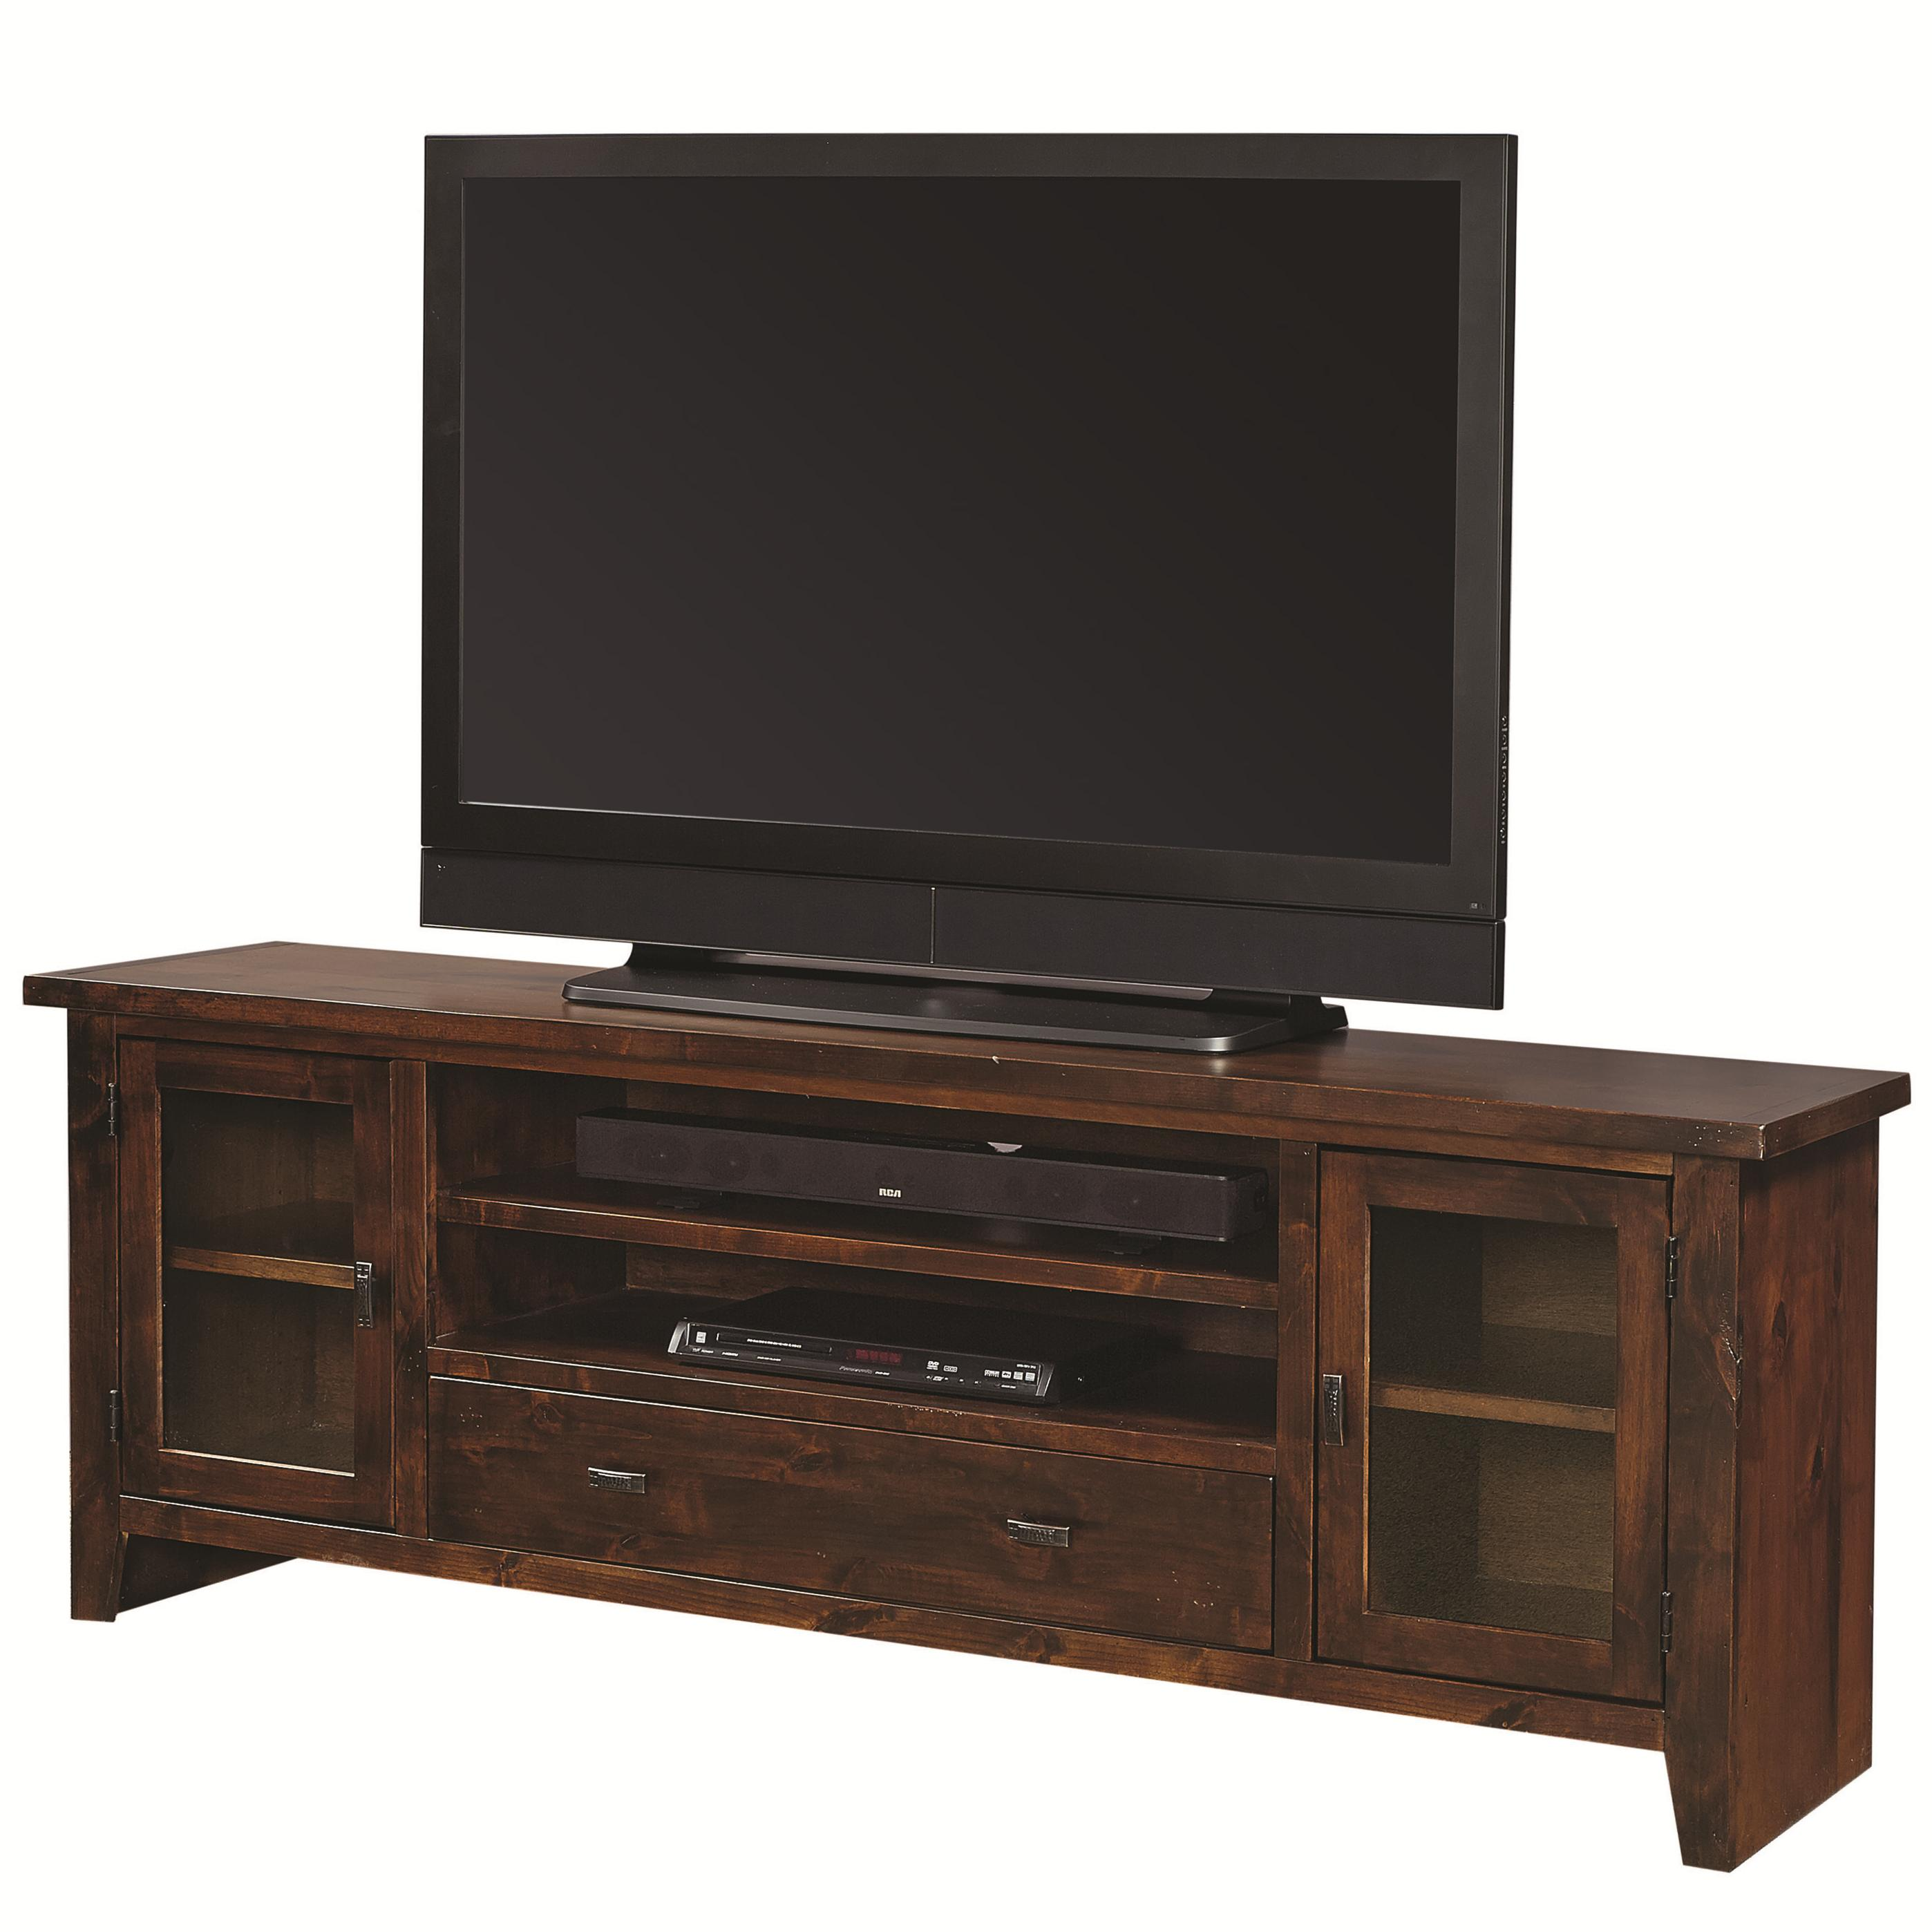 "Aspenhome Alder Grove 76"" Console with Drawer - Item Number: DG1076-TOB"